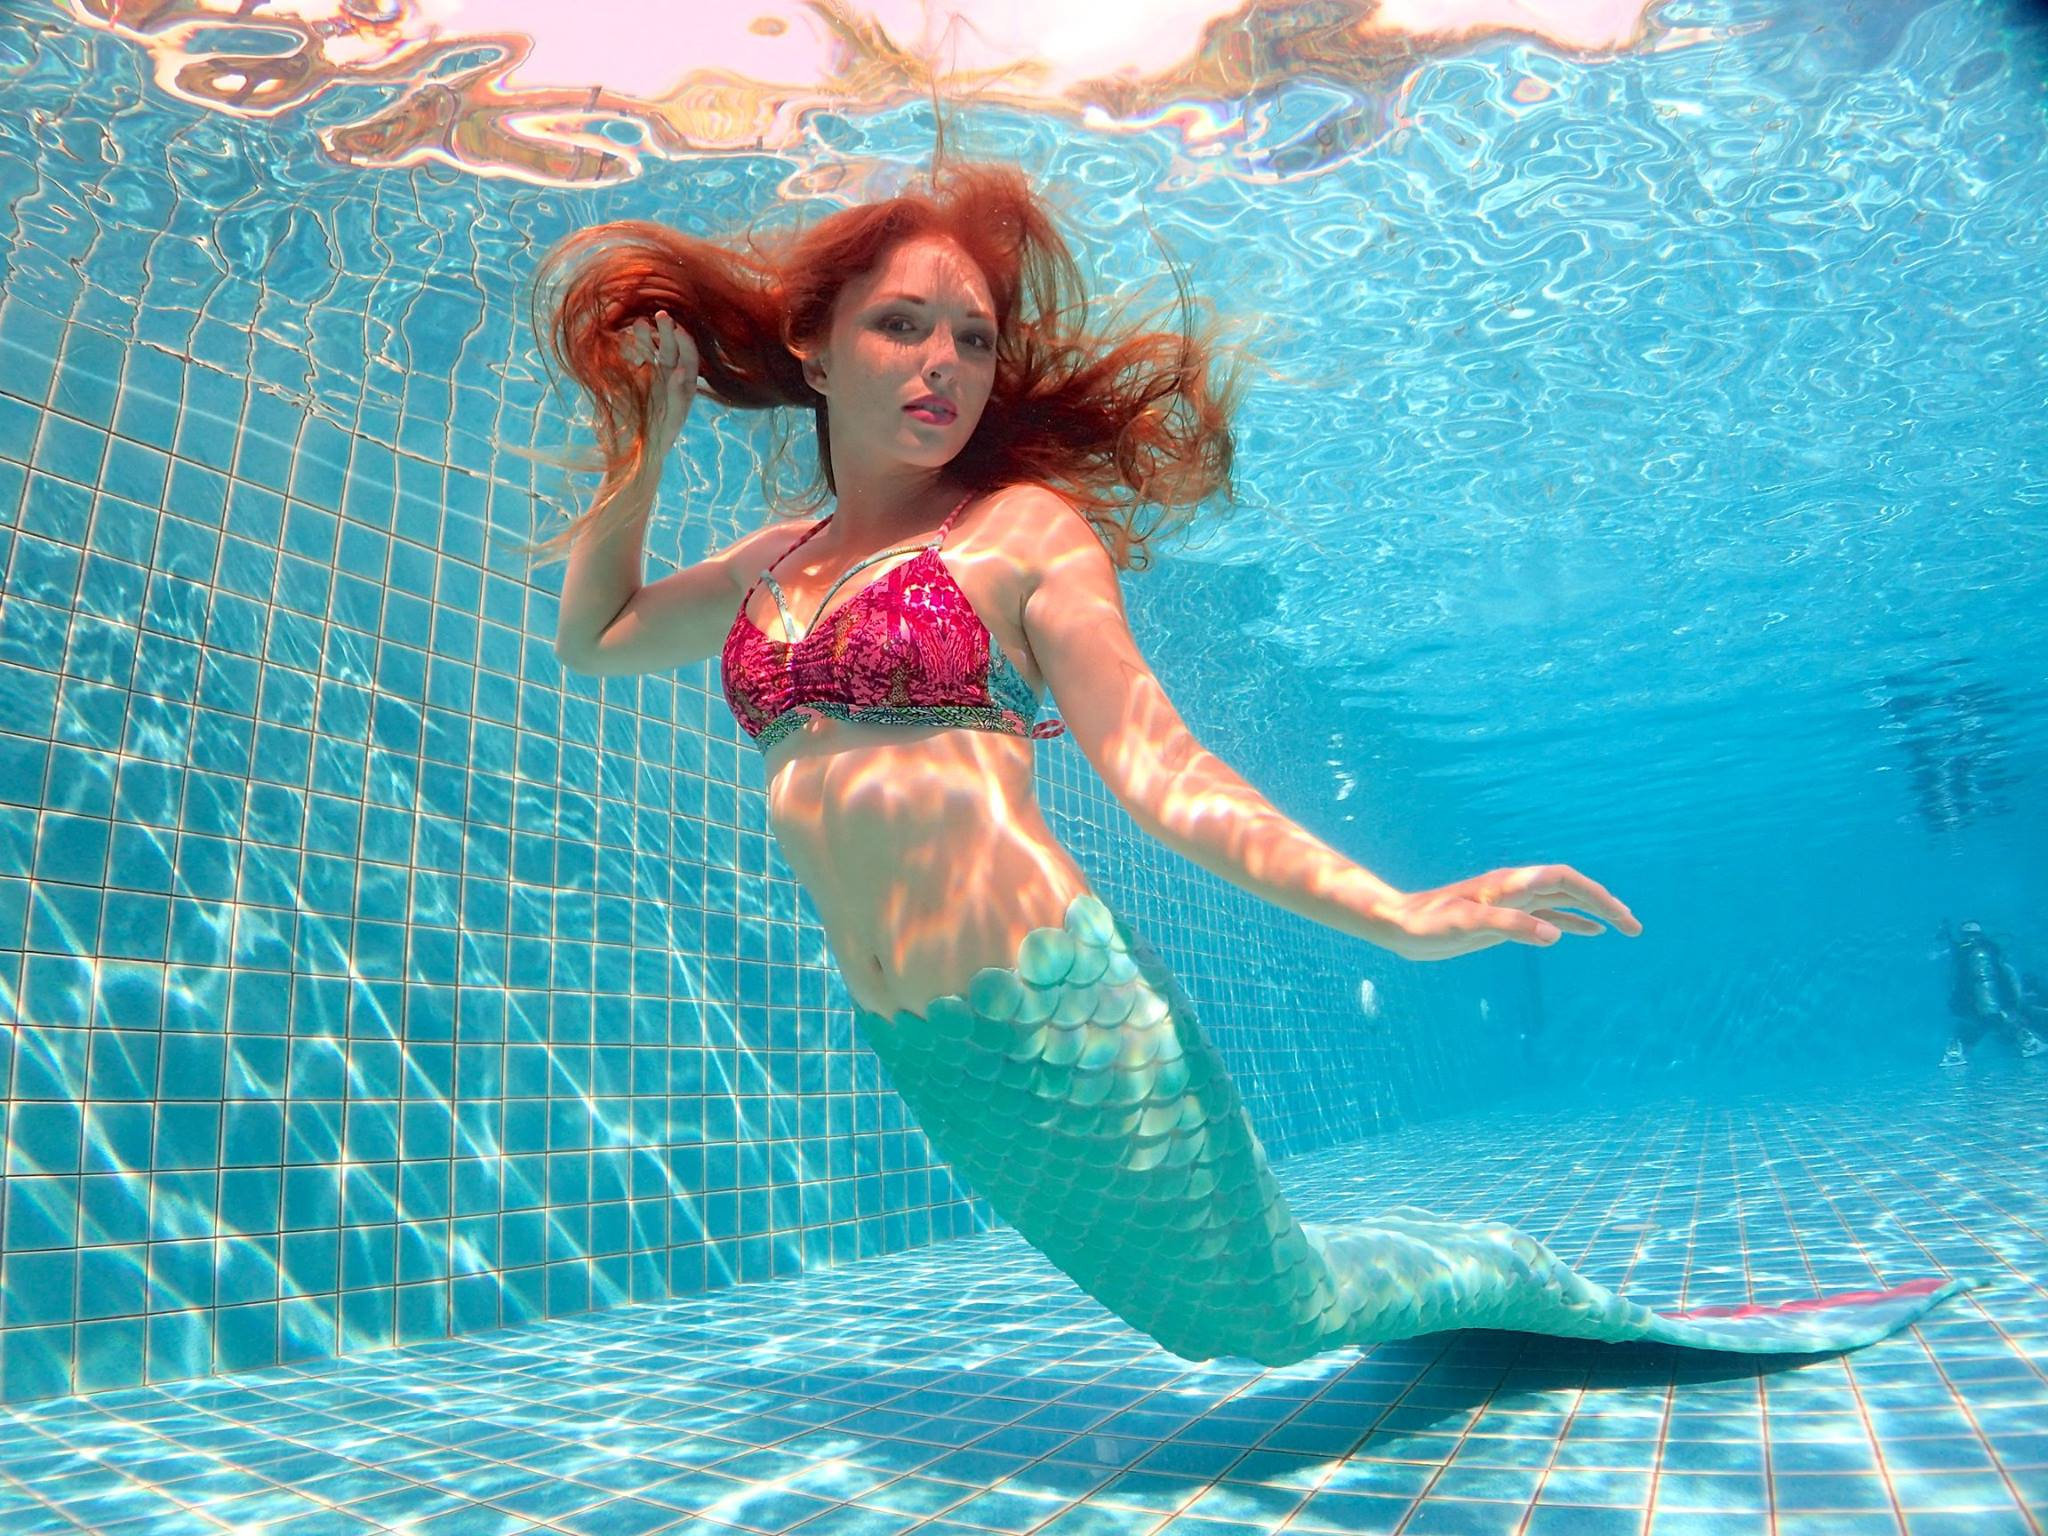 Melanie Long, 25, from Old Kilpatrick, who has made a living from being a professional mermaid.(SWNS)